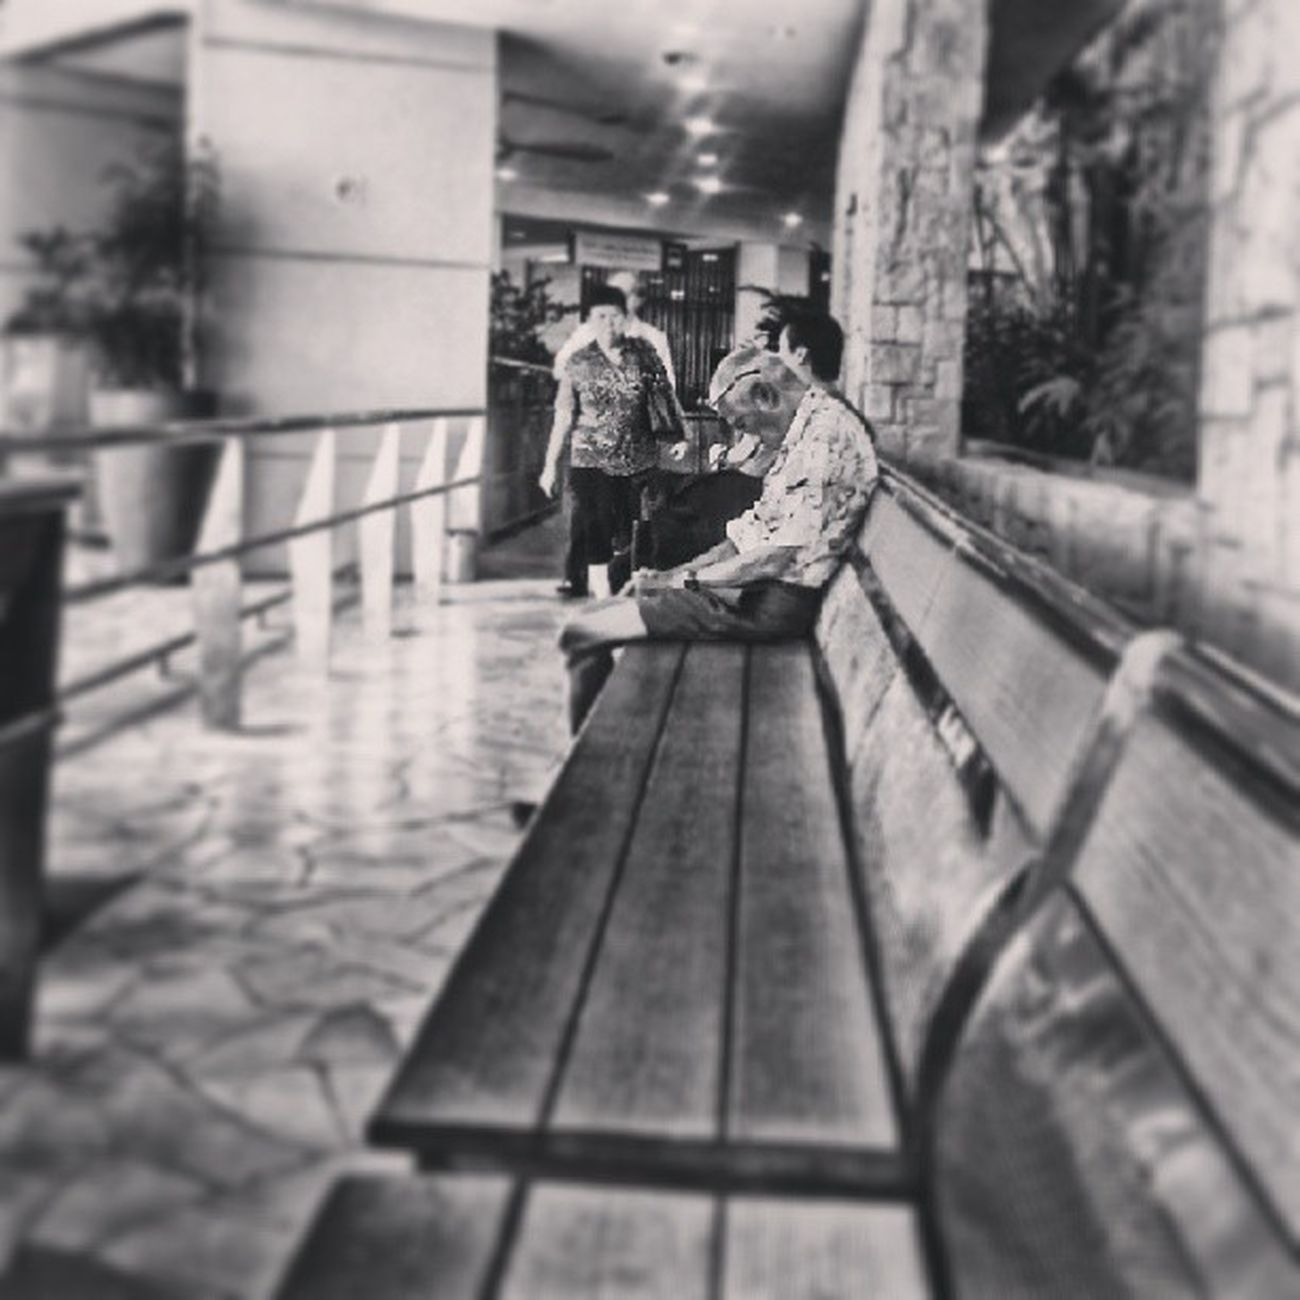 """All by myself......i wanna be...all by myself..."" Allshots_ Almaproject Artphoto_bw Bws_artist_asia Bnw_life Bnwalma Bnw_worldwide Bws_worldwide Bnw_captures Bws_streets Bnw_wonderful Bwstylesgf Bw_singapura Bnw_demand Cafe_noir Dailythemes Gf_singapore Ig_singapore Ig_street Ic_thestreets Igfotogram_4bw Jj_streetphotography Mybest_street Mybest_bw Streetstylesgf streetphoto_bw streetphotography_bw spacesintheheartlands webstagram wow_singapore"